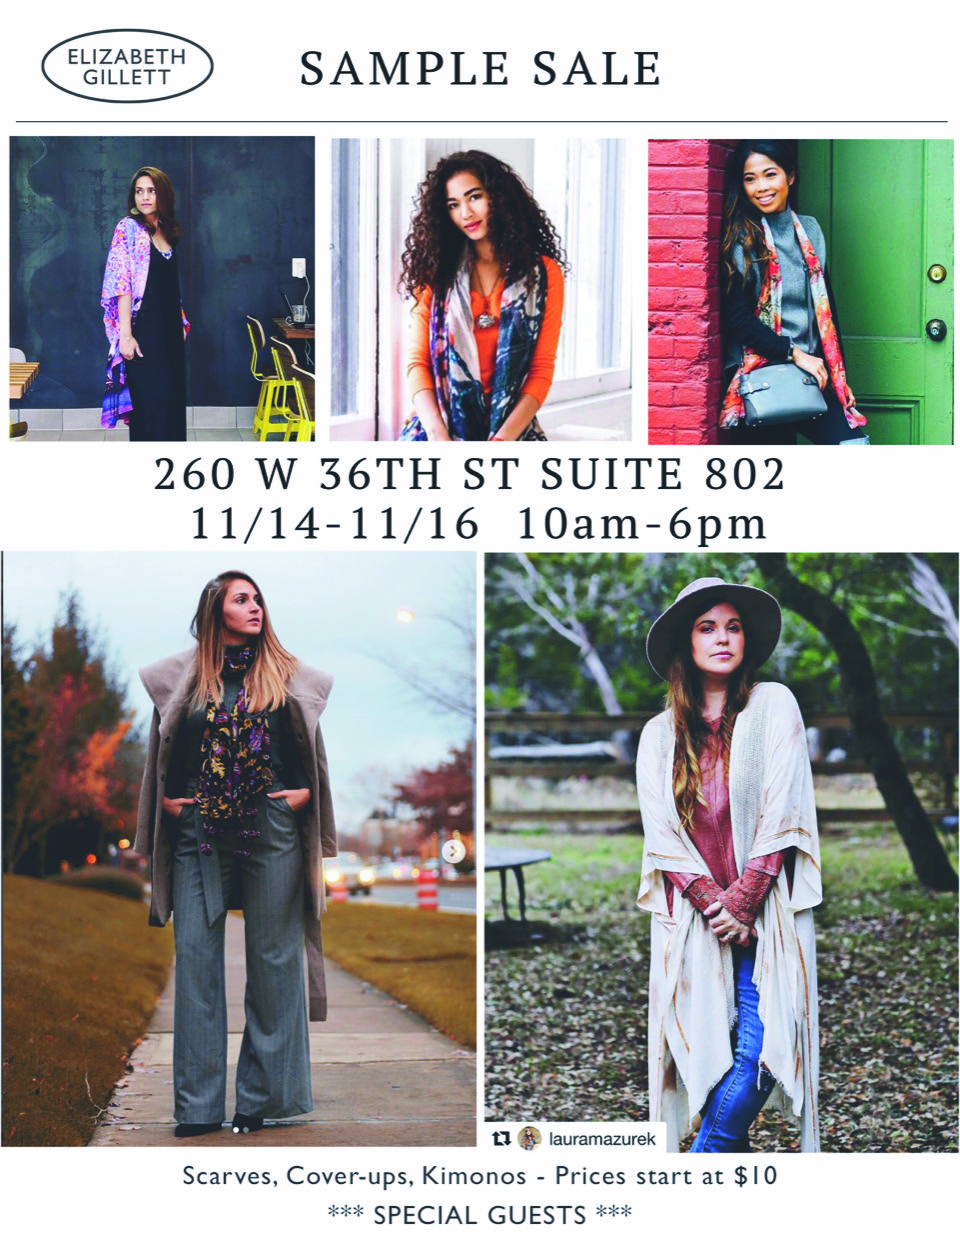 SampleSale-Flyer-November18.jpeg